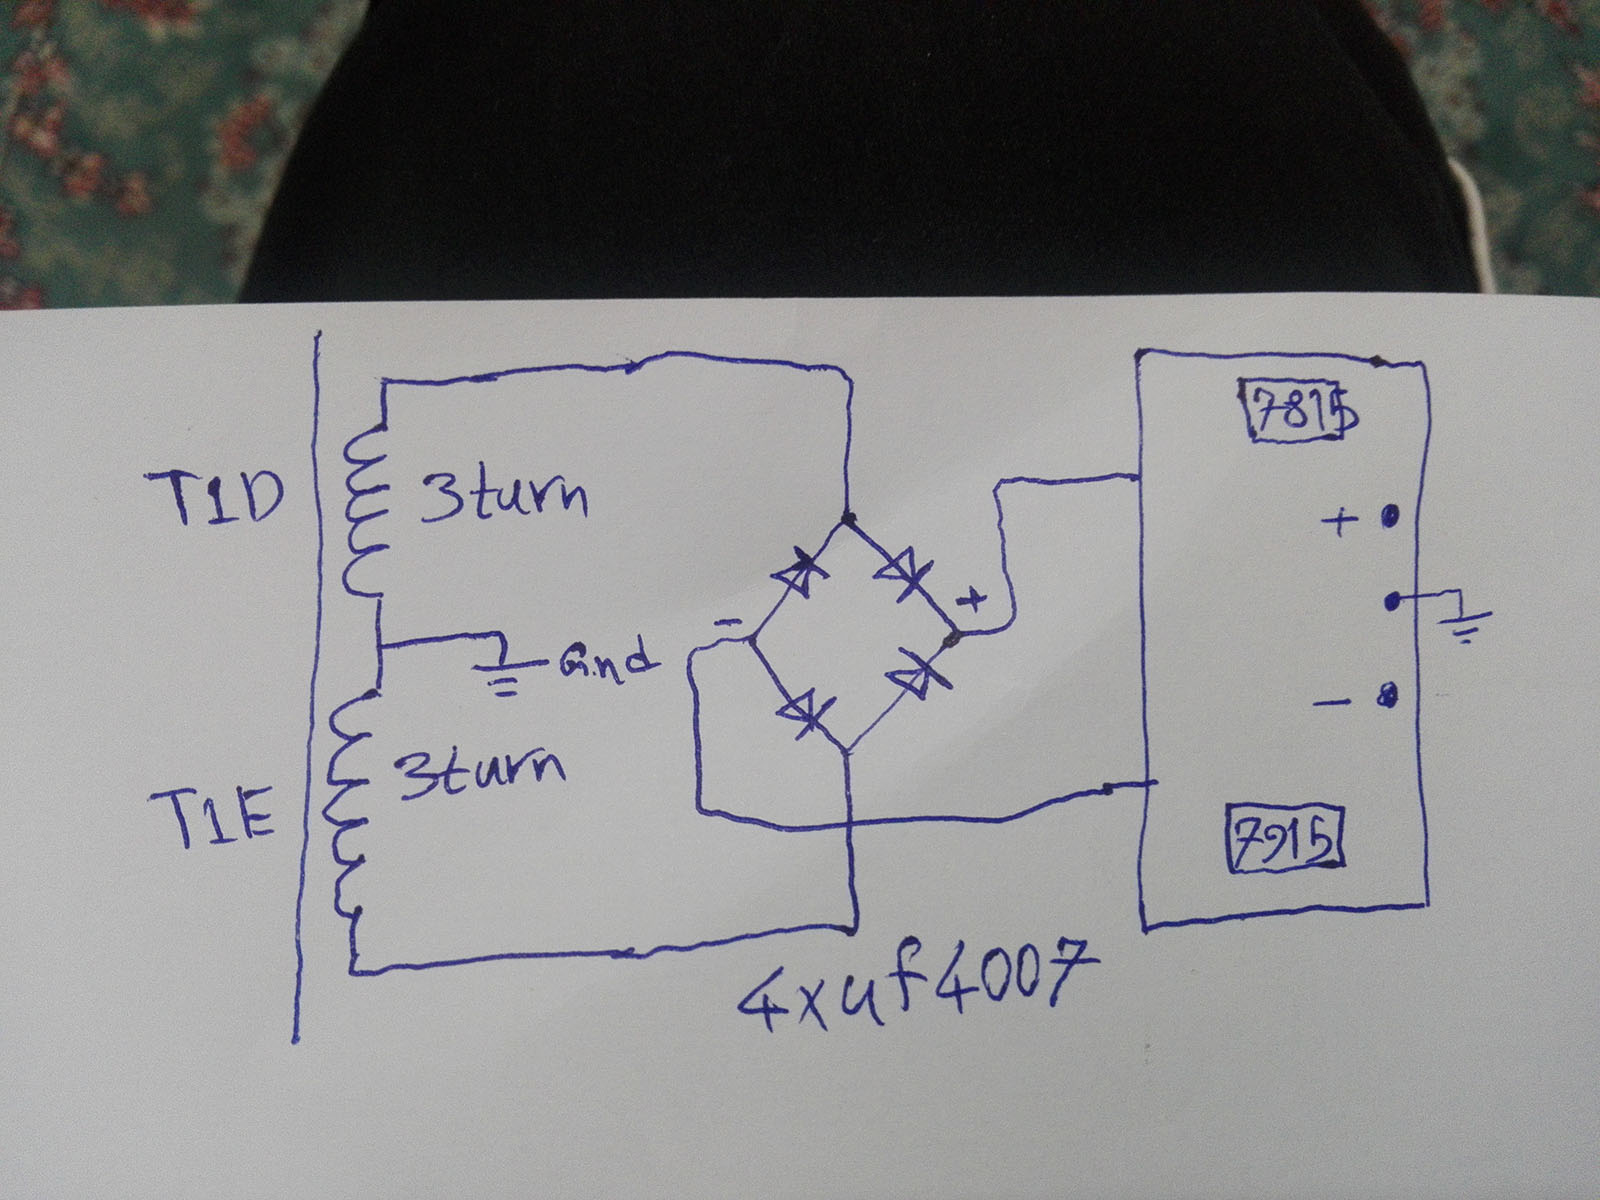 1kW smps project (based on MicrosiM design) [Archive] - Page 5 - diysmps